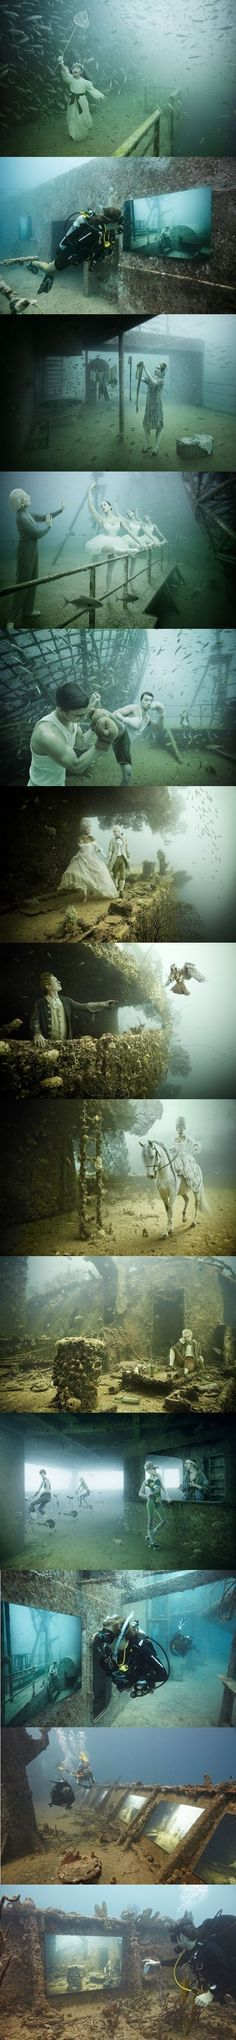 Isla Mujere's Underwater Museum in Cancun sits just below the waves on the floor of the Mexican Caribbean. Great diving place to take pictures! Oh The Places You'll Go, Places To Travel, Places To Visit, Dream Vacations, Vacation Spots, Mexico Vacation, Beautiful World, Beautiful Places, Underwater Photography